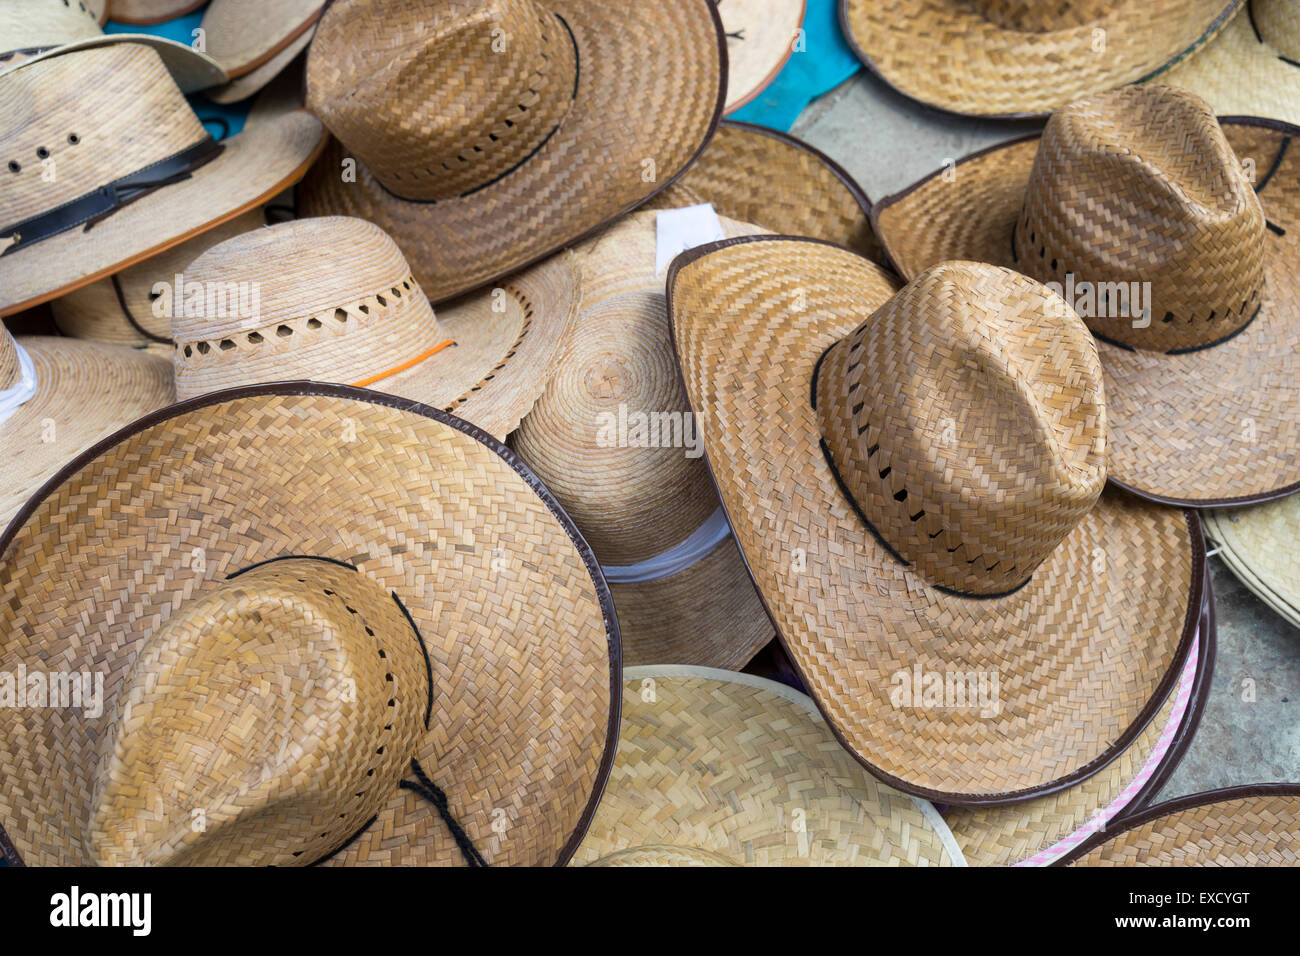 a52e1eeea7a0c Assortment of woven straw hats on display at a Mexican market - Stock Image